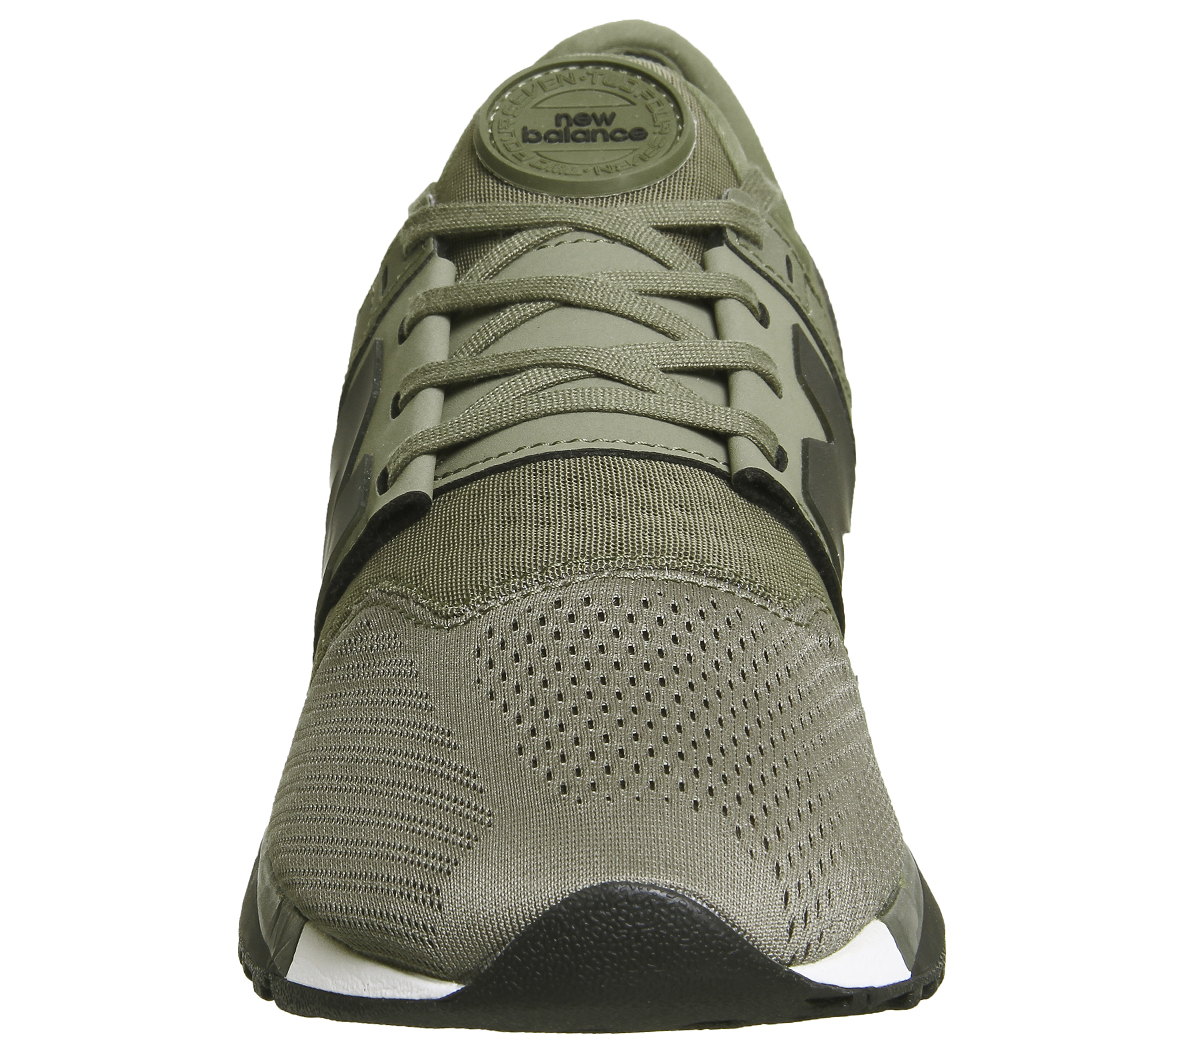 7985d5d71e8 Sentinel Mens New Balance 247 Trainers OLIVE Trainers Shoes